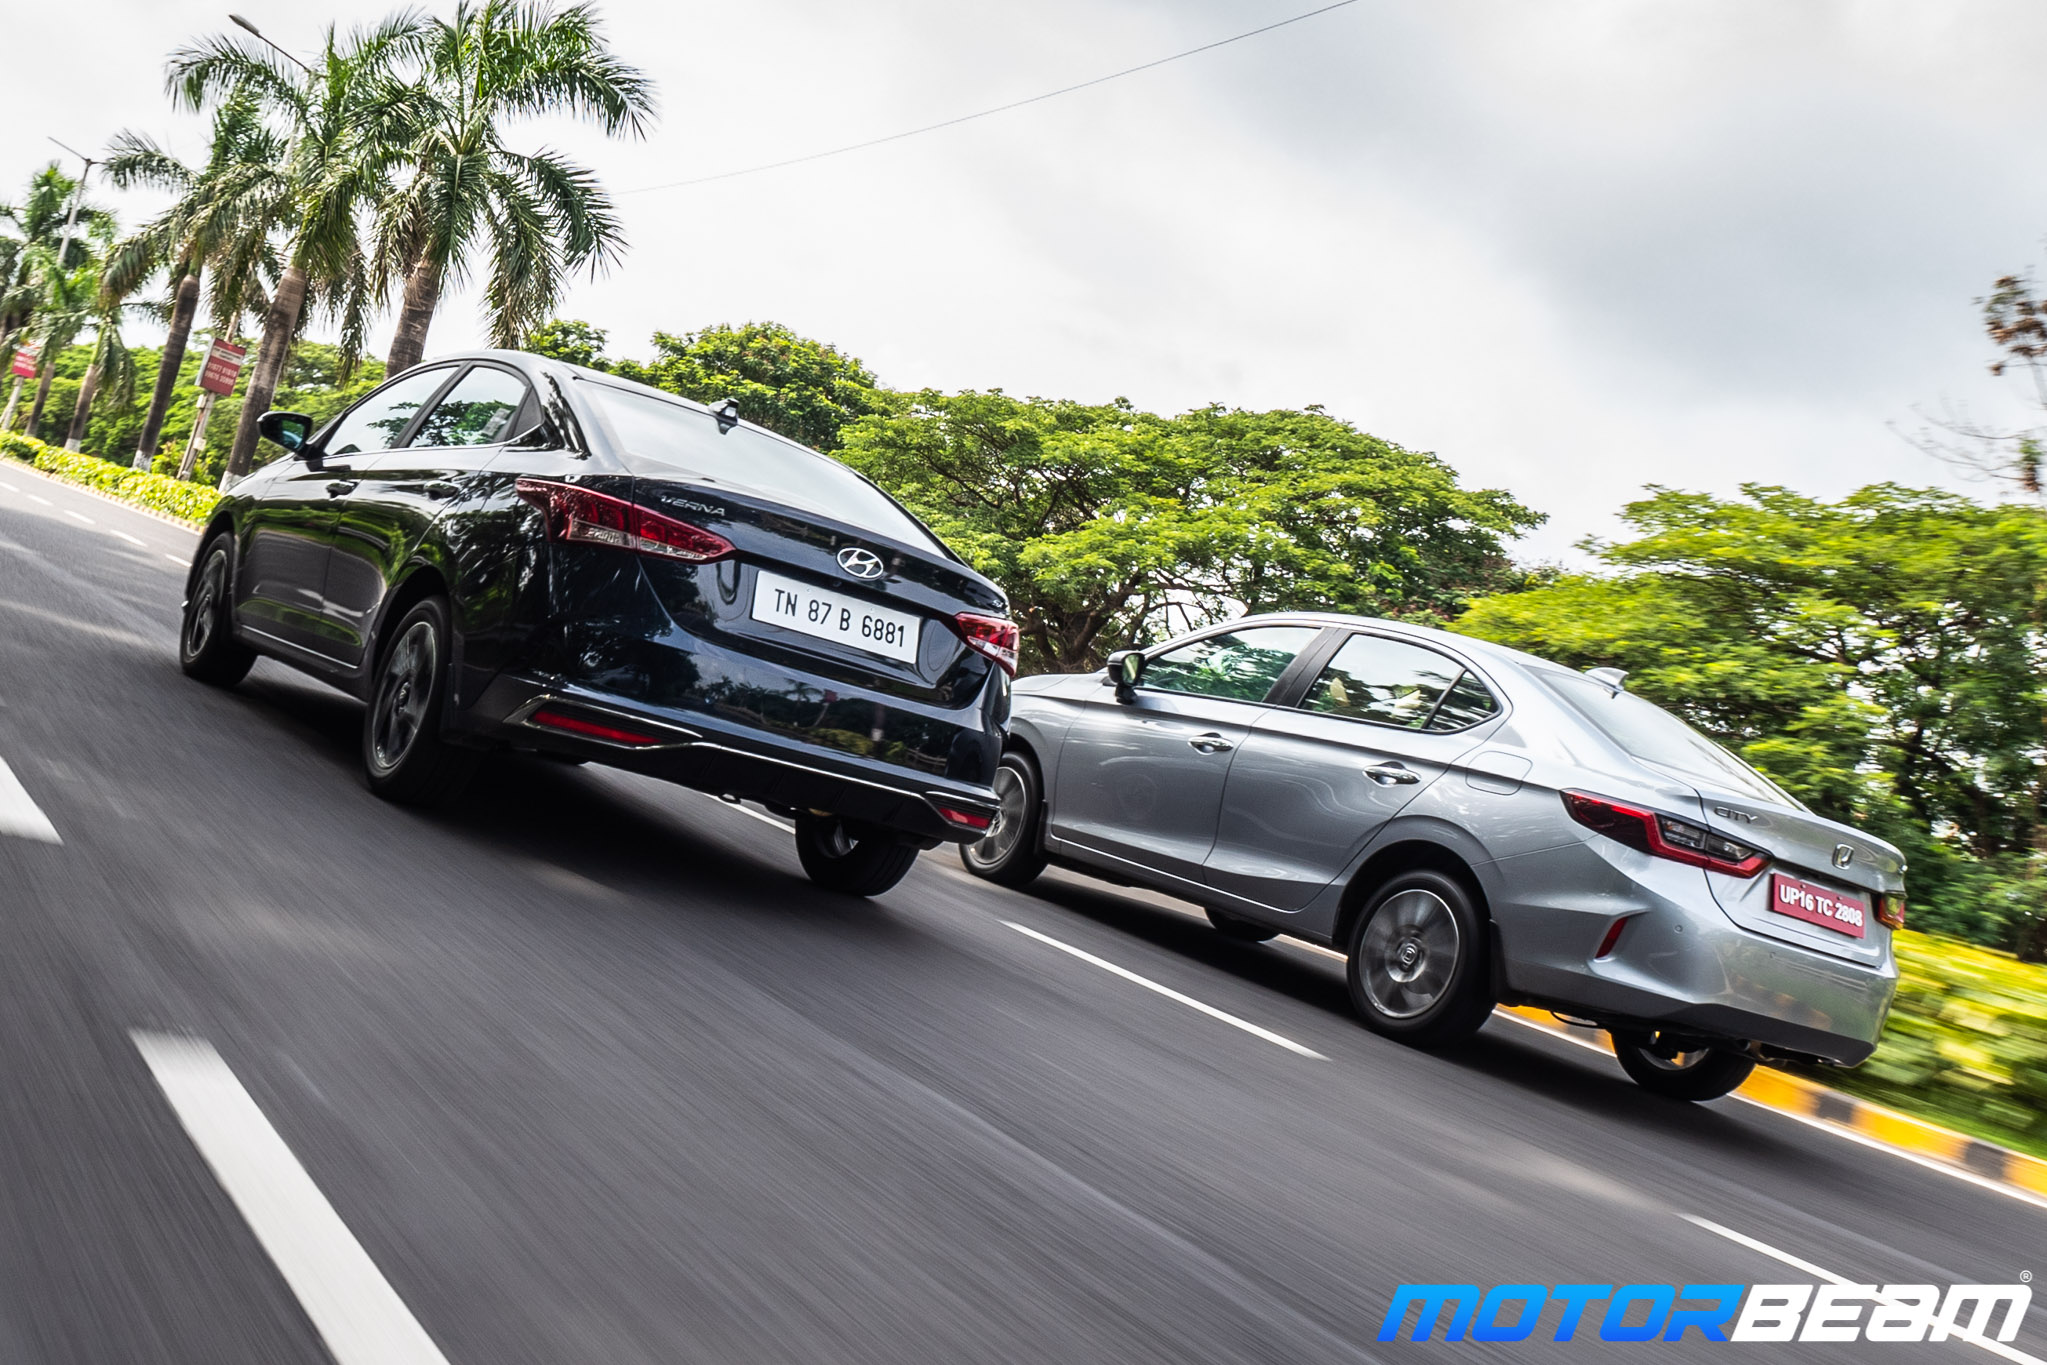 2020-Honda-City-vs-Hyundai-Verna-11